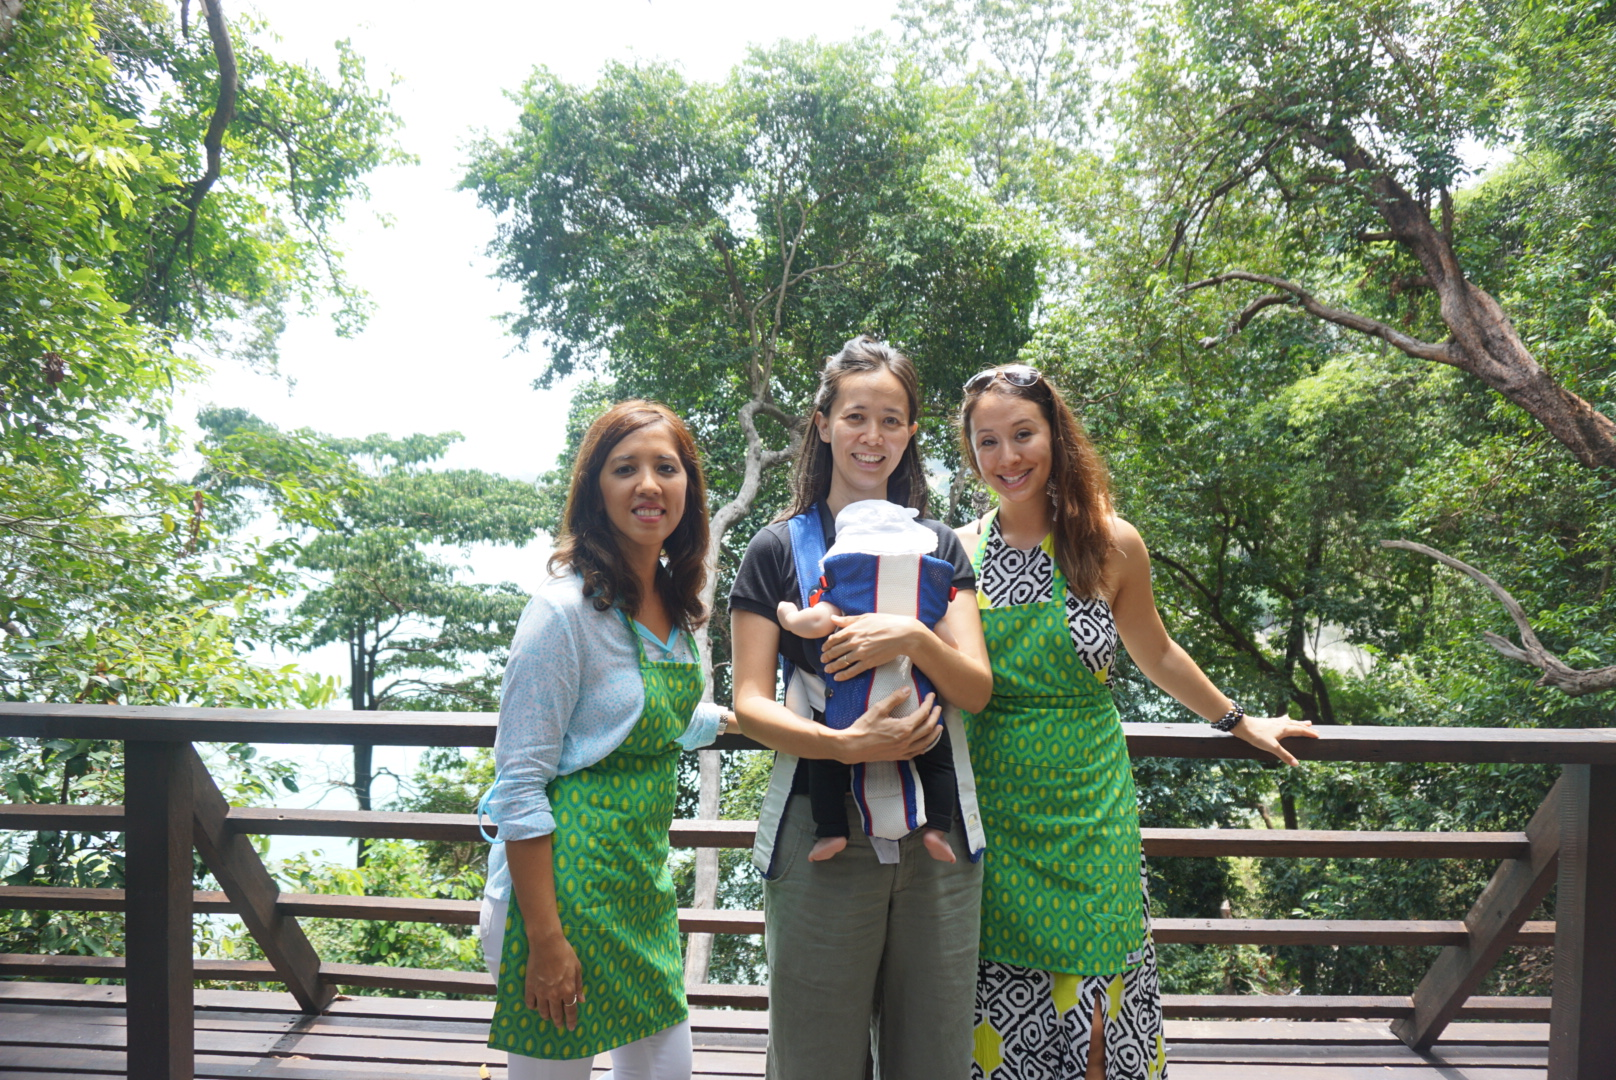 With Katharine Chua, the MD of Tropical Spice Garden, and her adorable daughter!